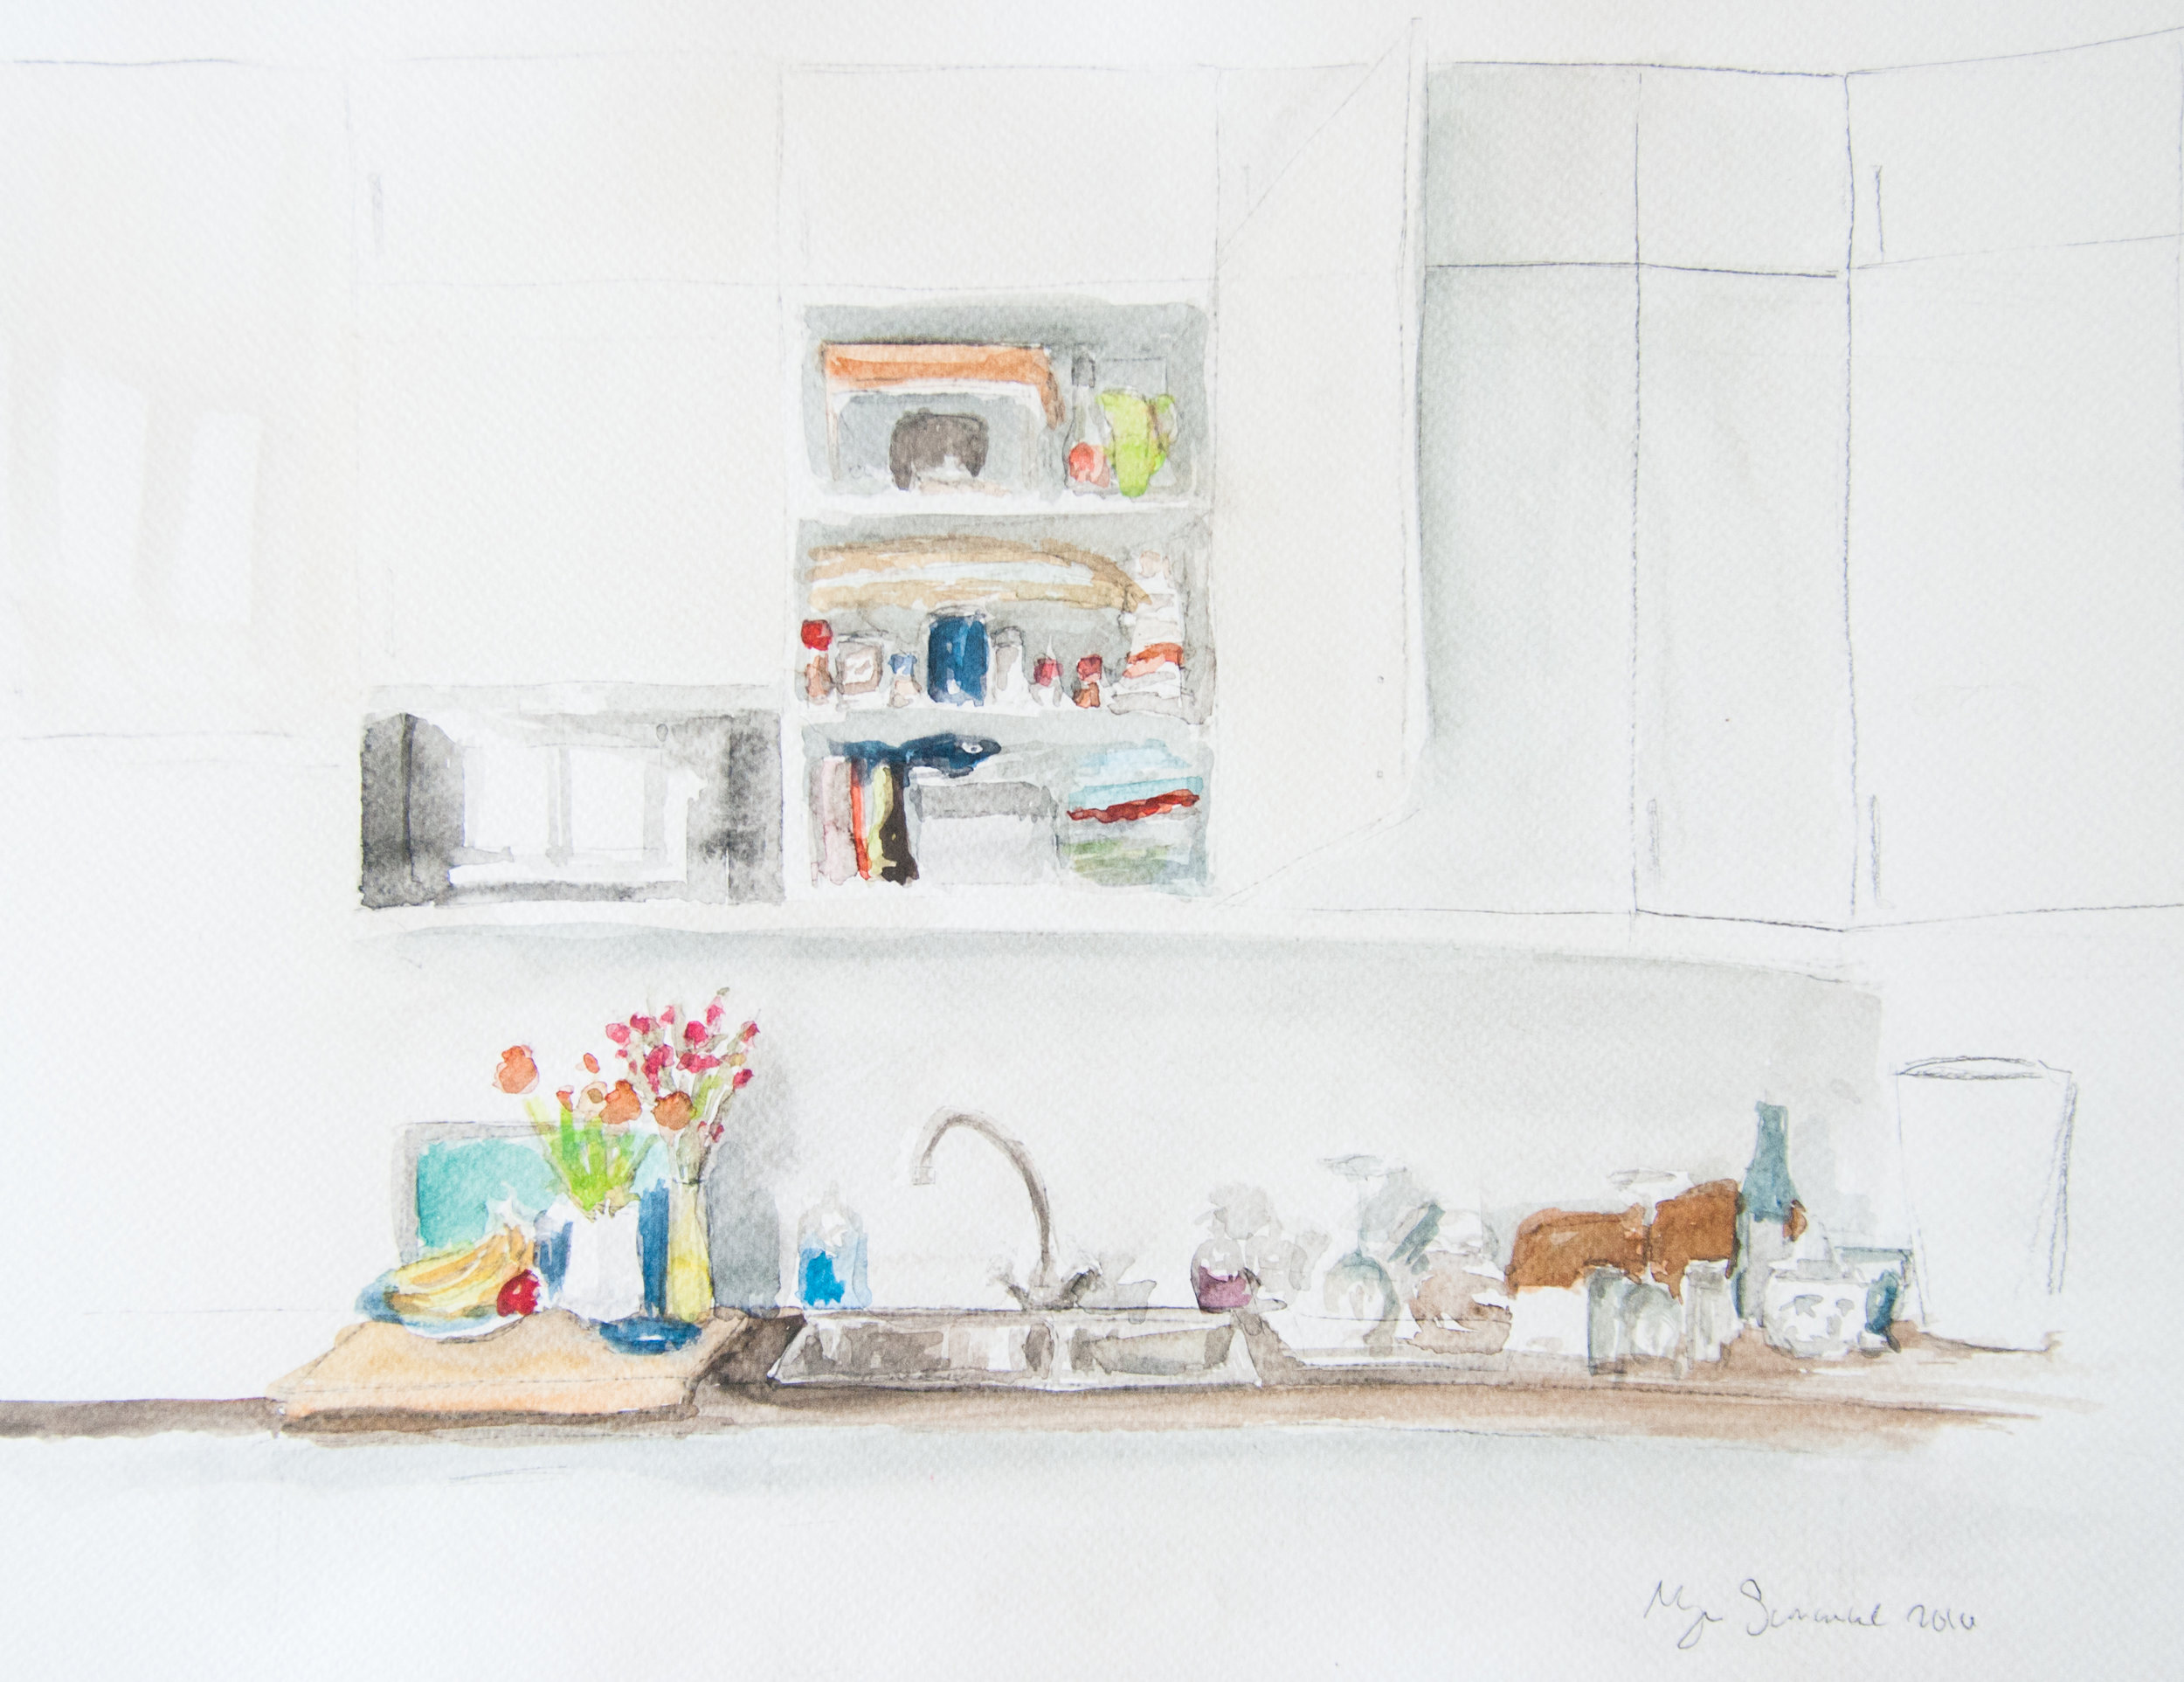 Kitchen 1. 43x30cm. Watercolor, gouache, and graphite on paper. 2016.